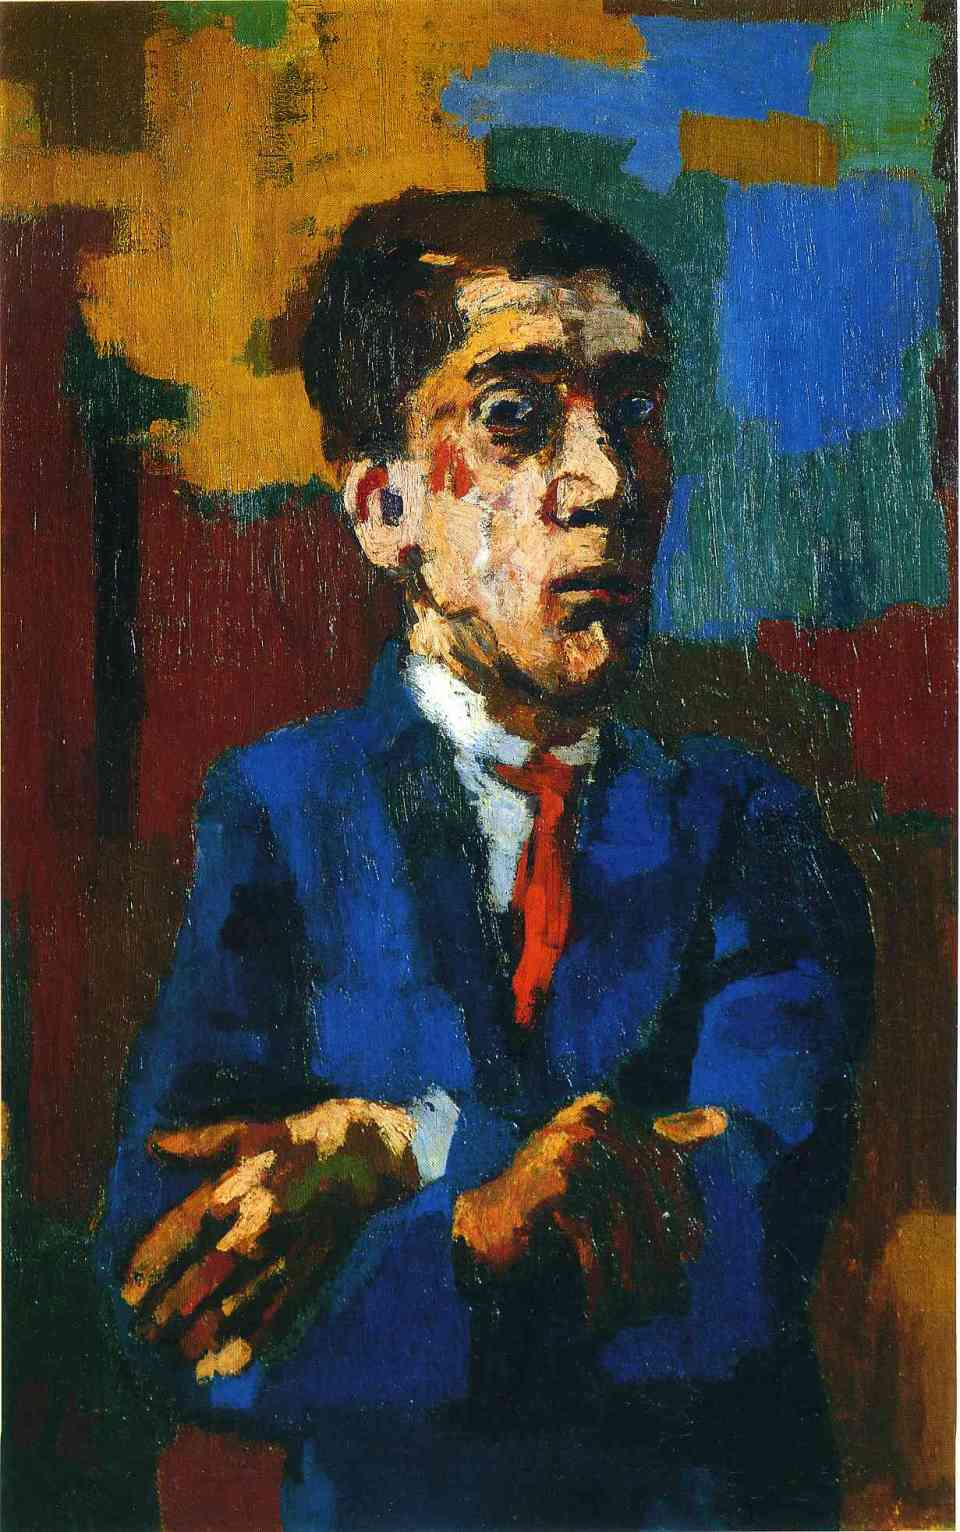 oskar-kokoschka-self-portrait-with-arms-folded-1923